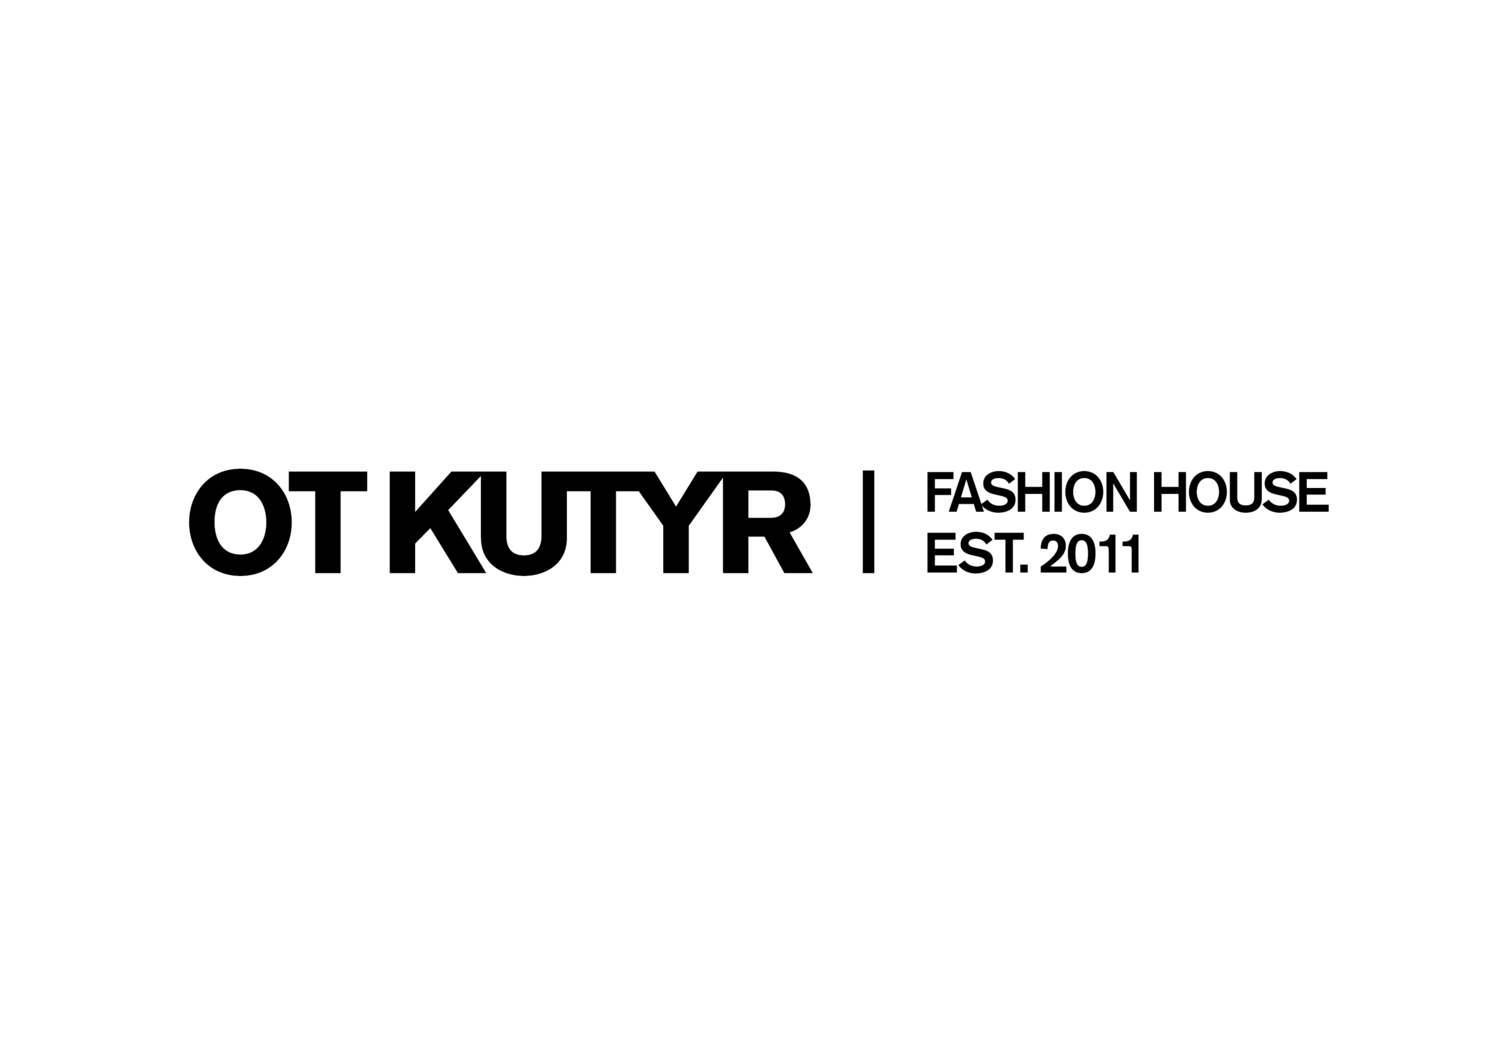 OTKUTYR Fashion House